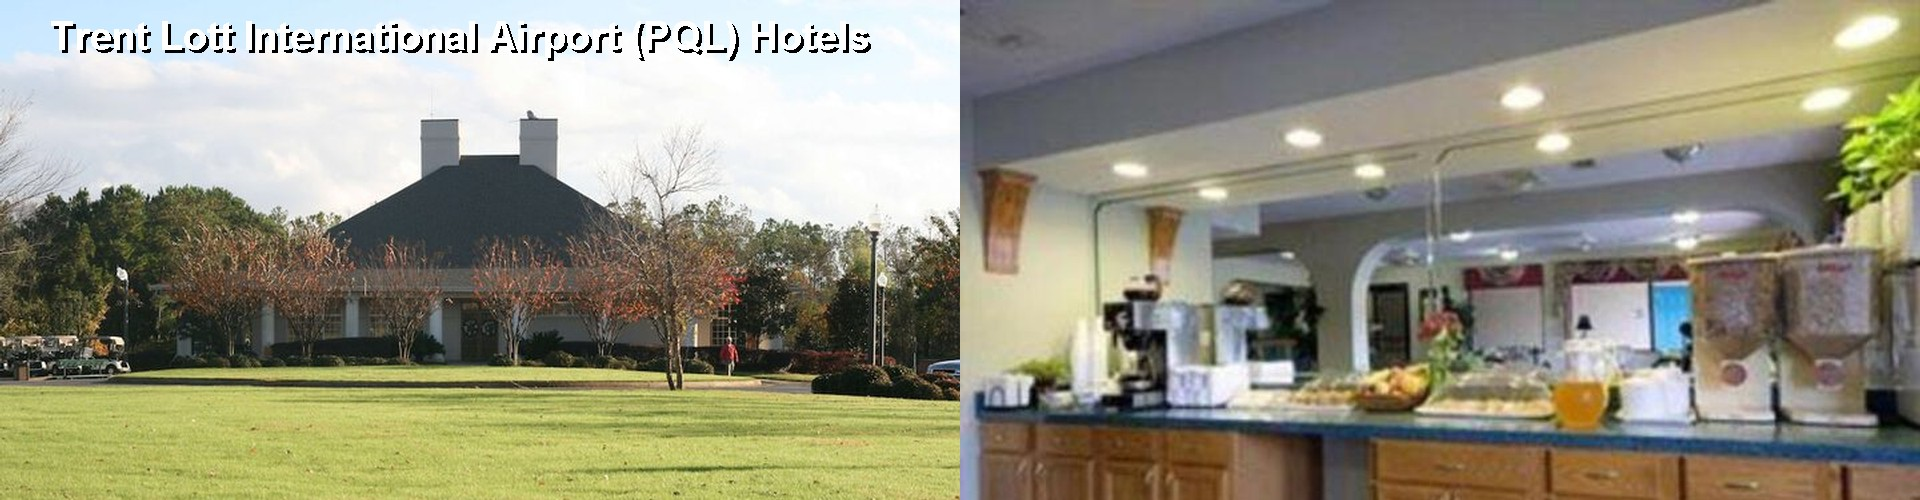 30 Hotels Near Trent Lott International Airport Pql In